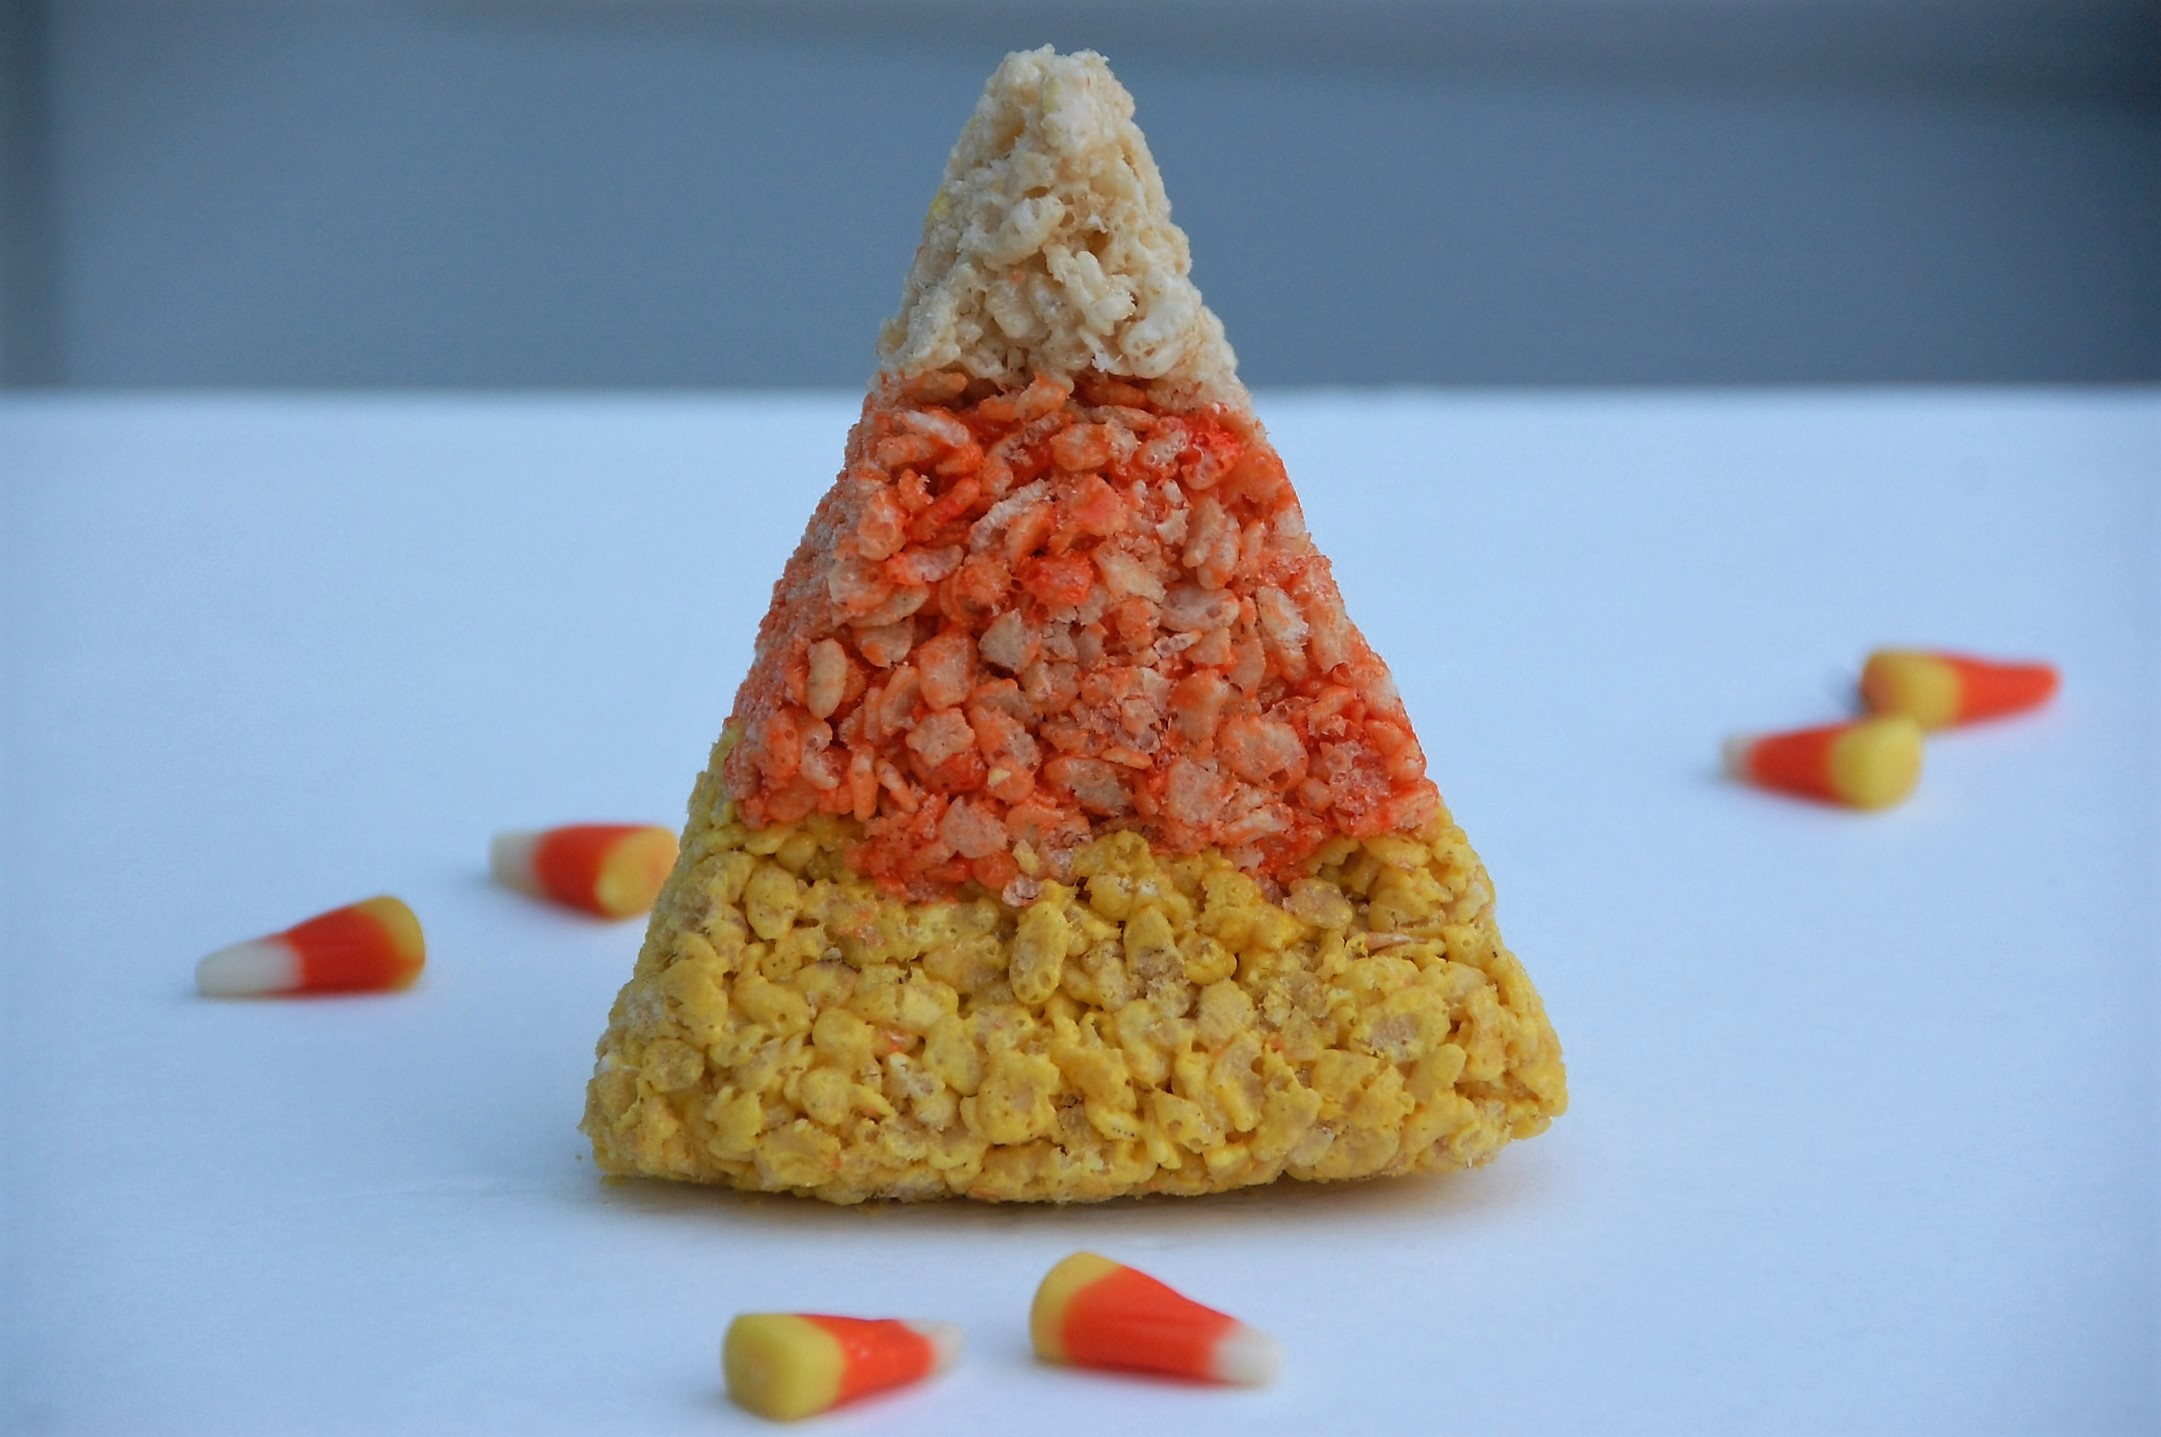 These Rice Krispies Treats that look like candy corns are the perfect fall and Halloween treat for your kids